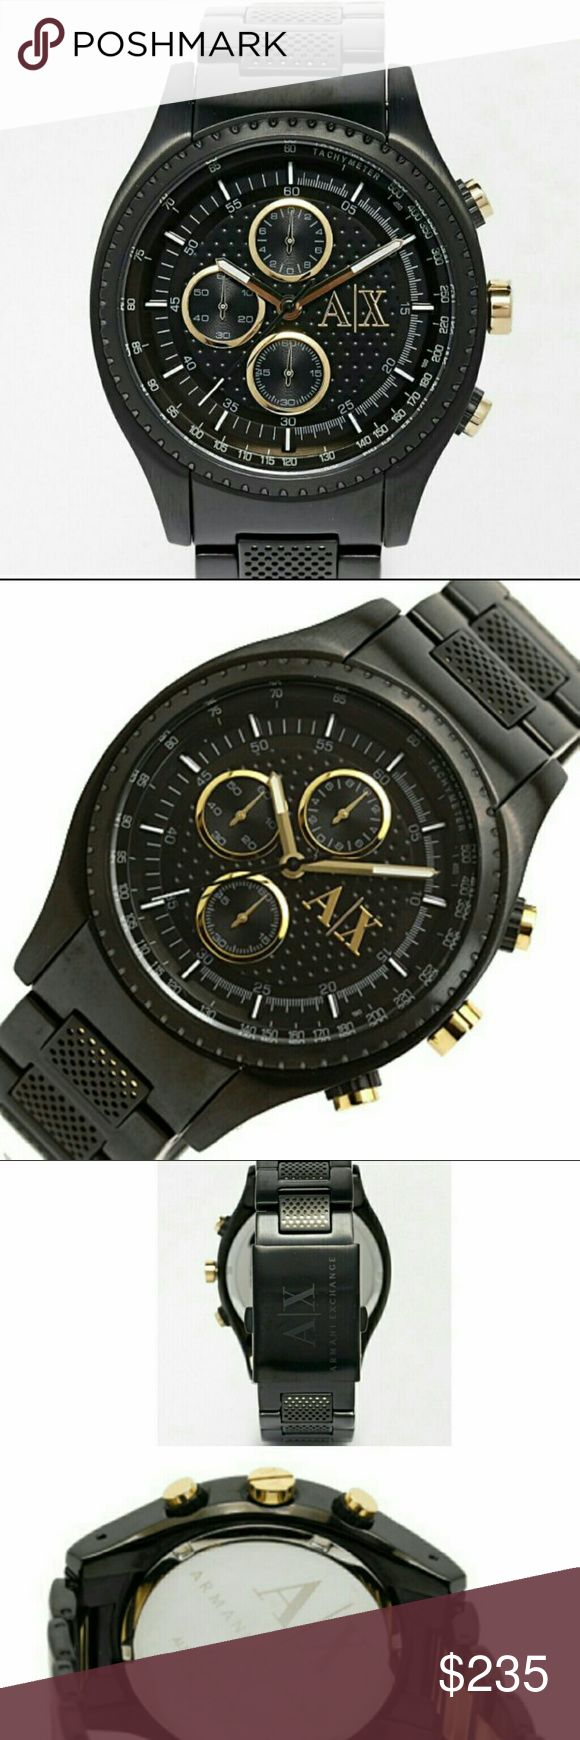 sale,NWT Armani Exchange Chronograph watch Sunday sale   NWT Armani Exchange Men's Chronograph Black Watch  FIRM PRICE FIRM PRICE FIRM PRICE FIRM PRICE  242.00 . AUTHENTIC WATCH  . AUTHENTIC BOX  . AUTHENTIC MANUAL  SHIPPING  PLEASE ALLOW FEW BUSINESS DAYS FOR ME TO SHIPPED IT OFF.I HAVE TO GET IT FROM MY WAREHOUSE  THANK YOU FOR YOUR UNDERSTANDING Armani Exchange  Accessories Watches